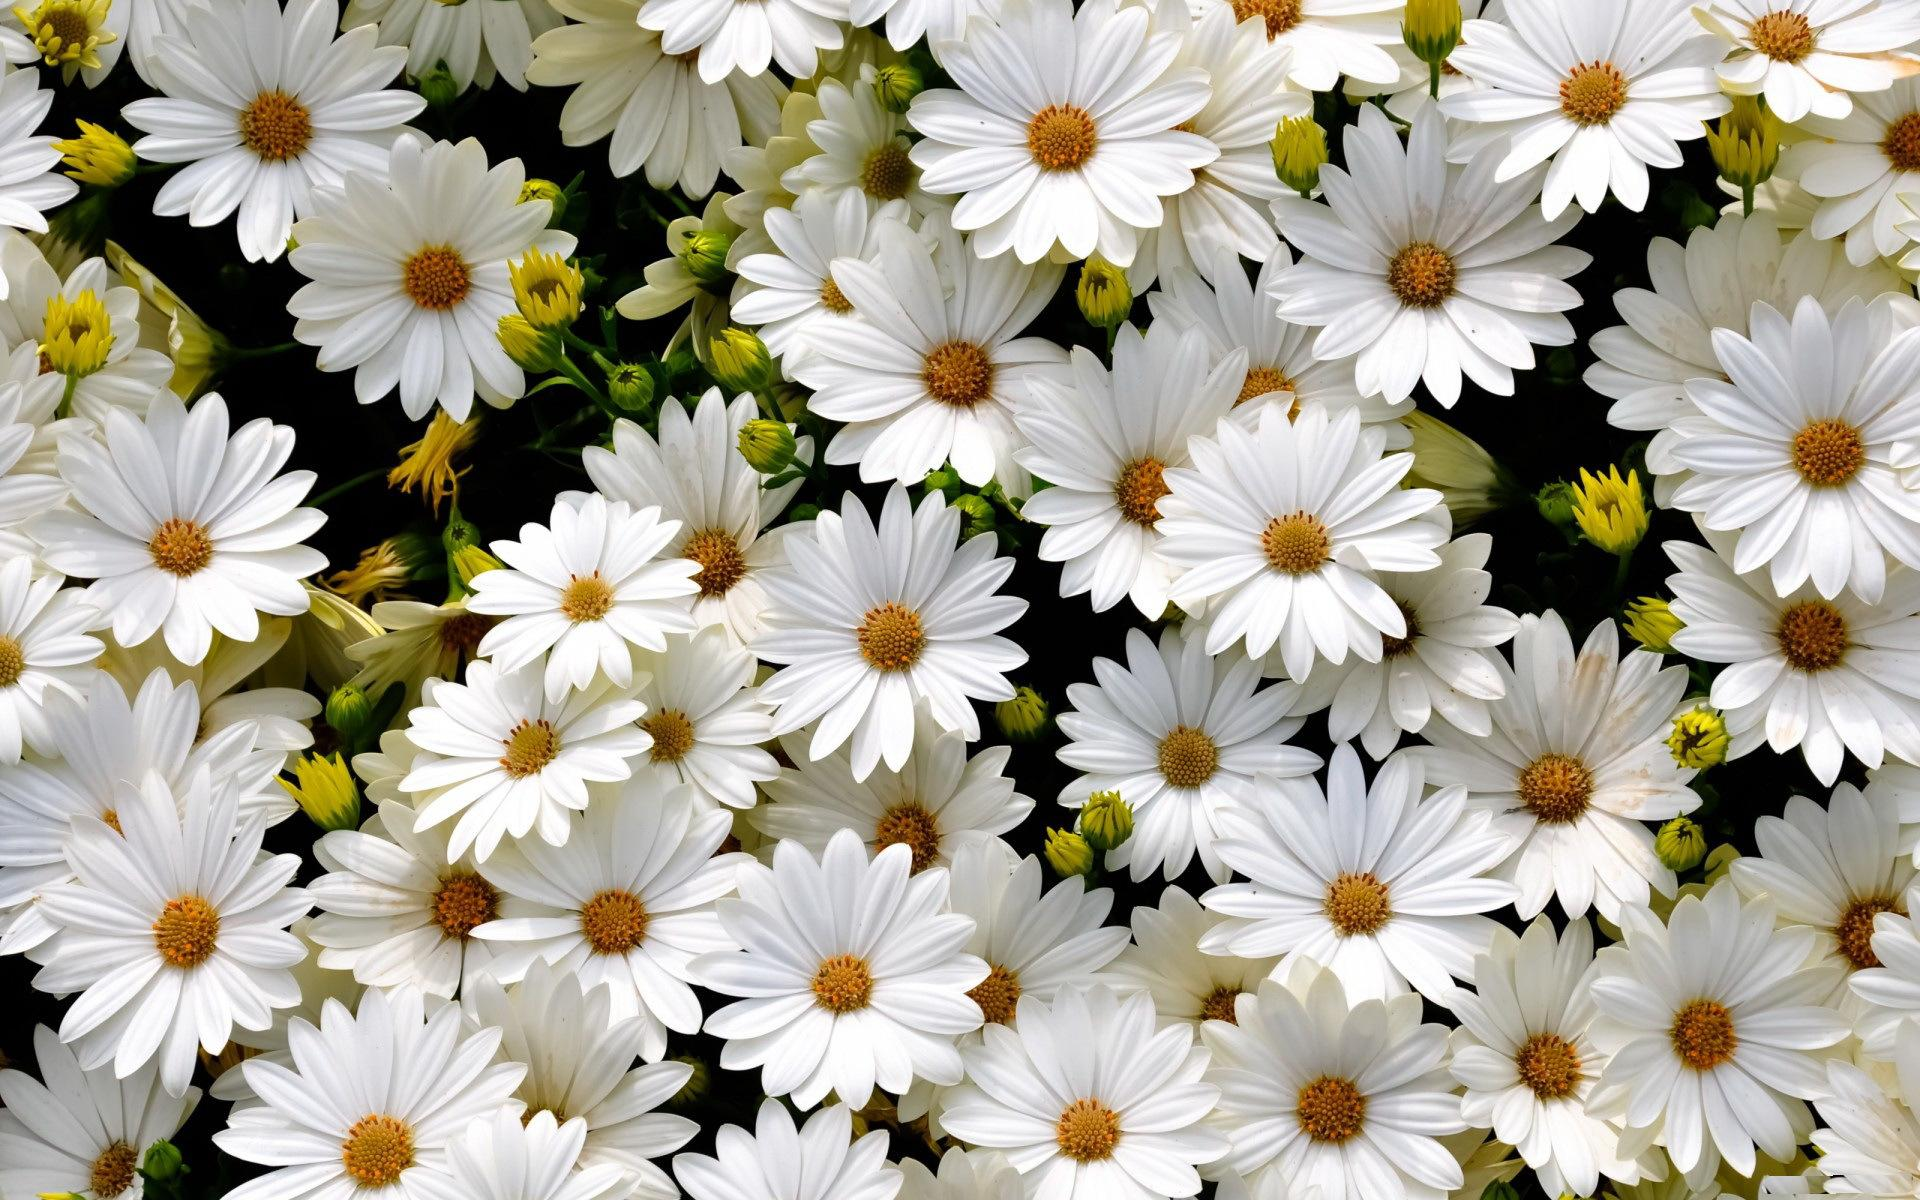 White daisies HQ Wallpaper